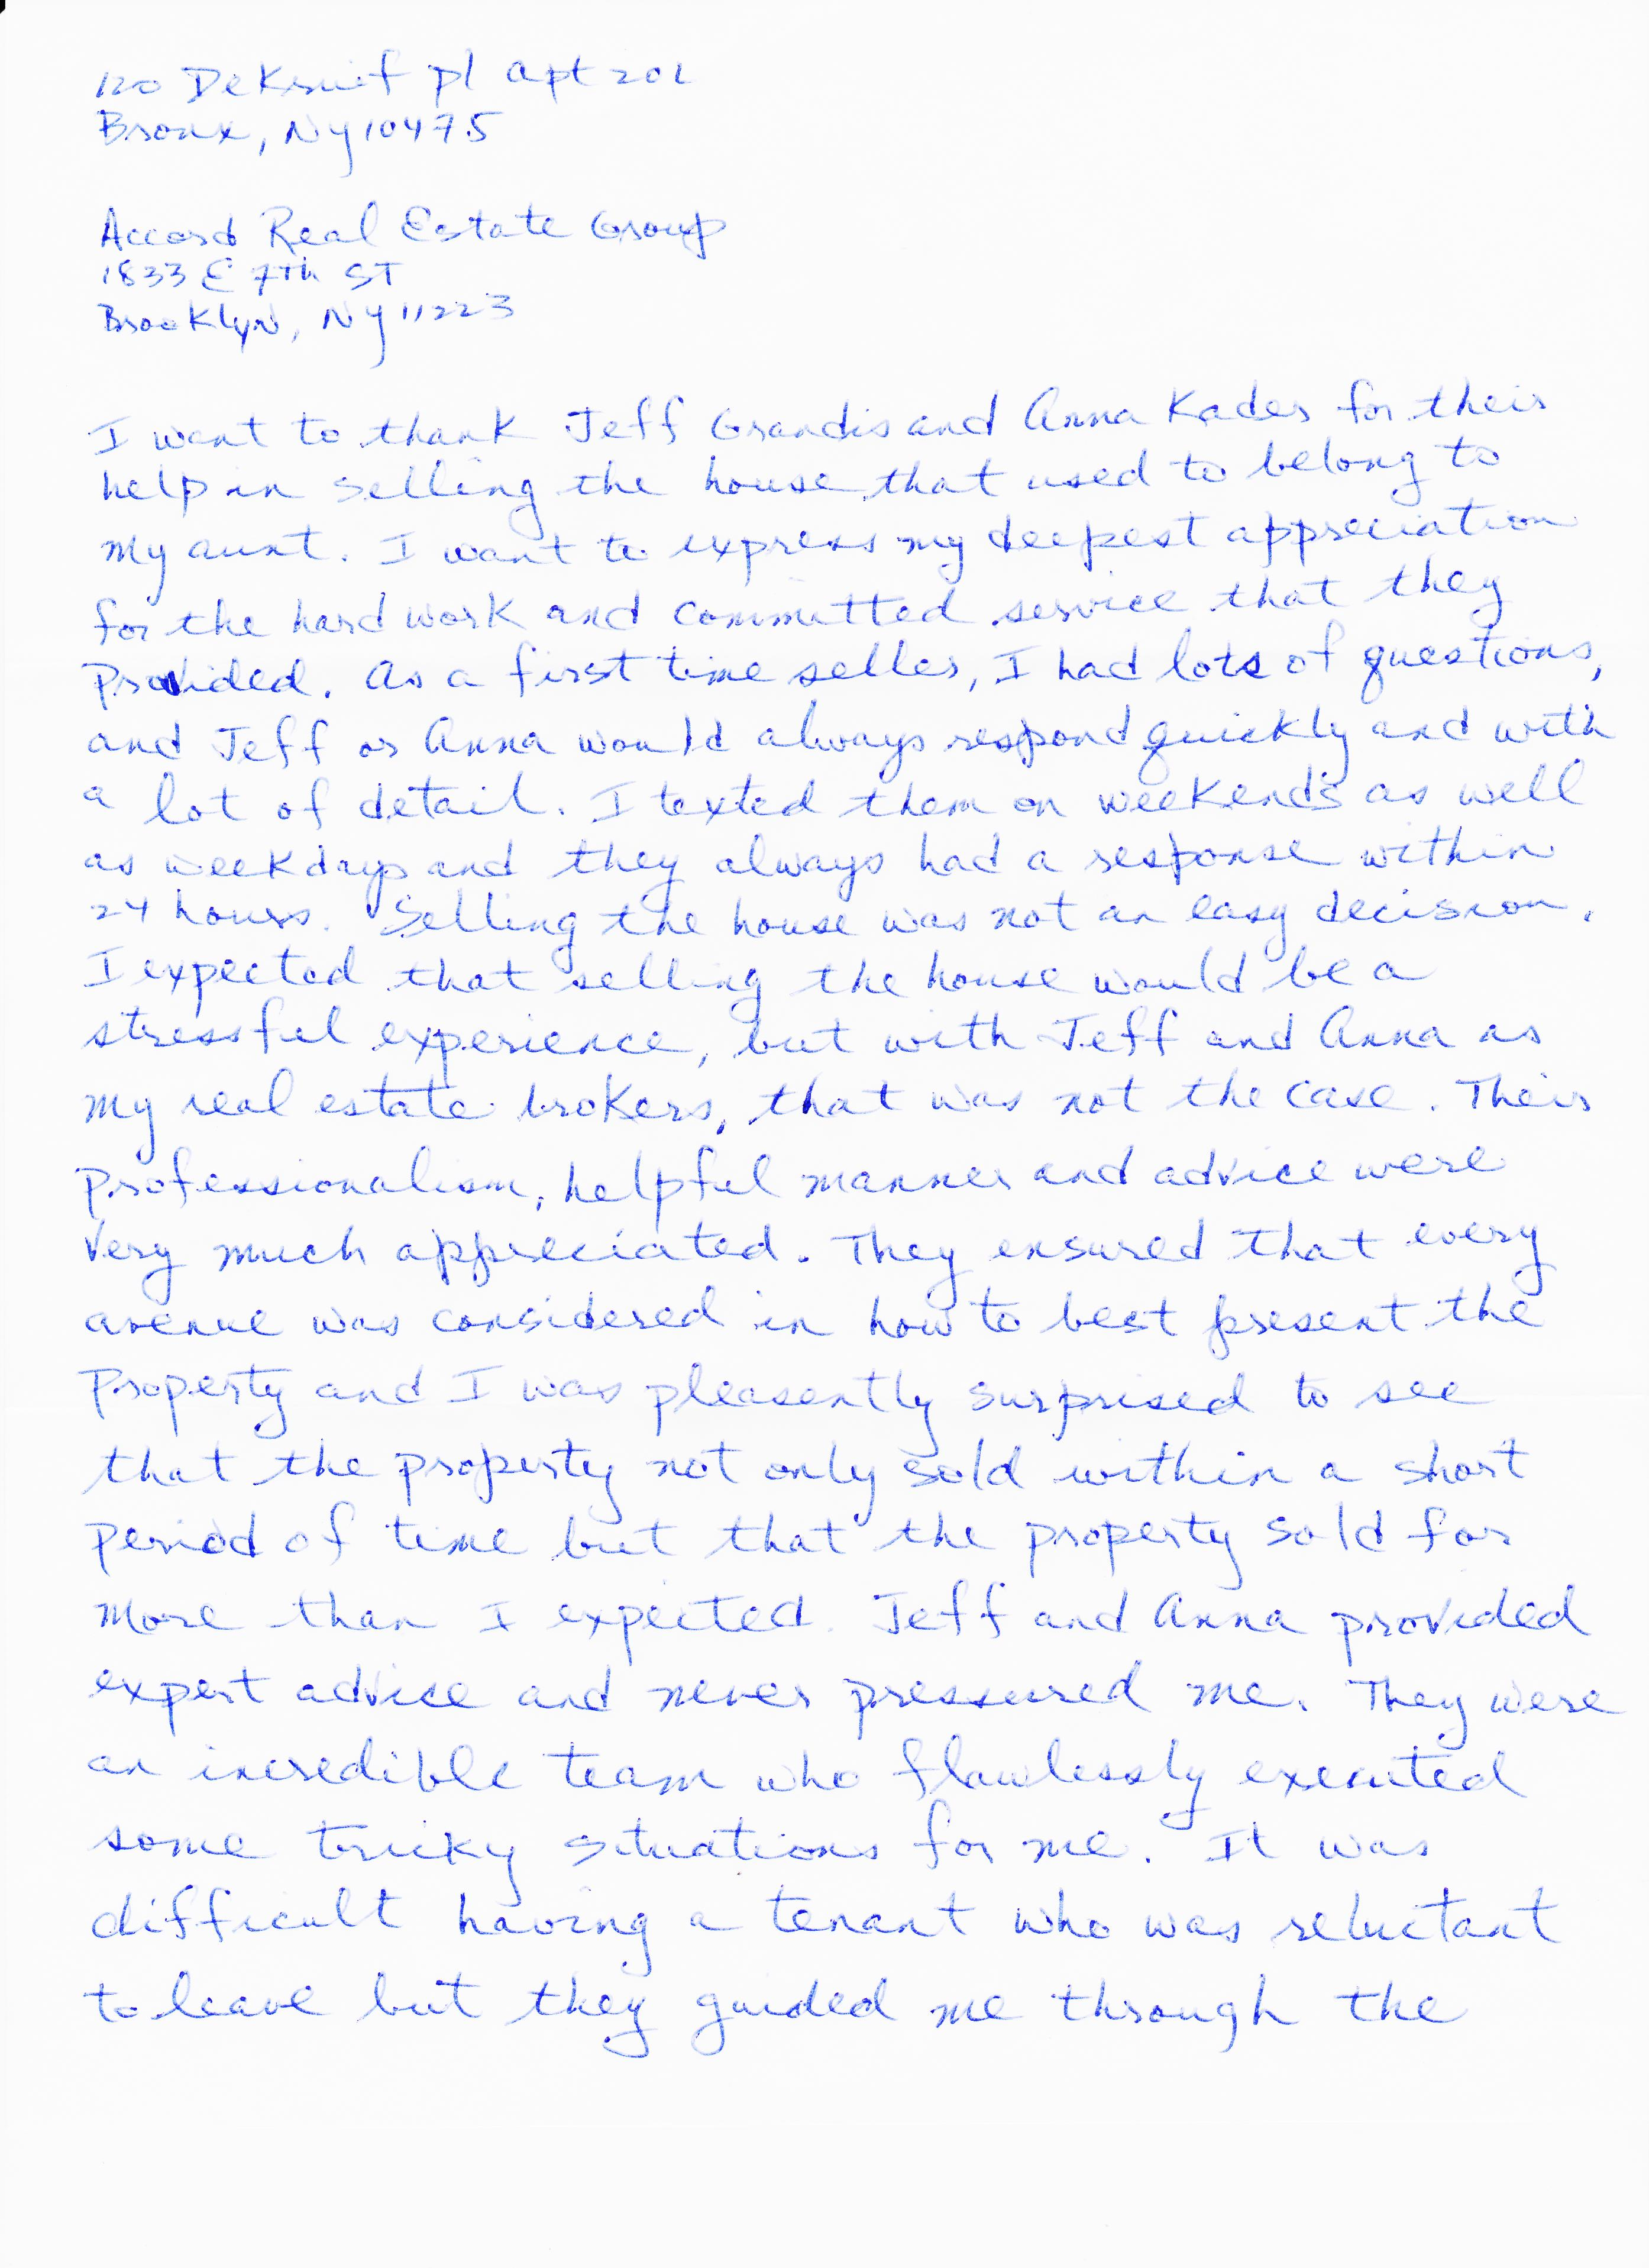 Testimonial Letter from Levinton- pg1of2